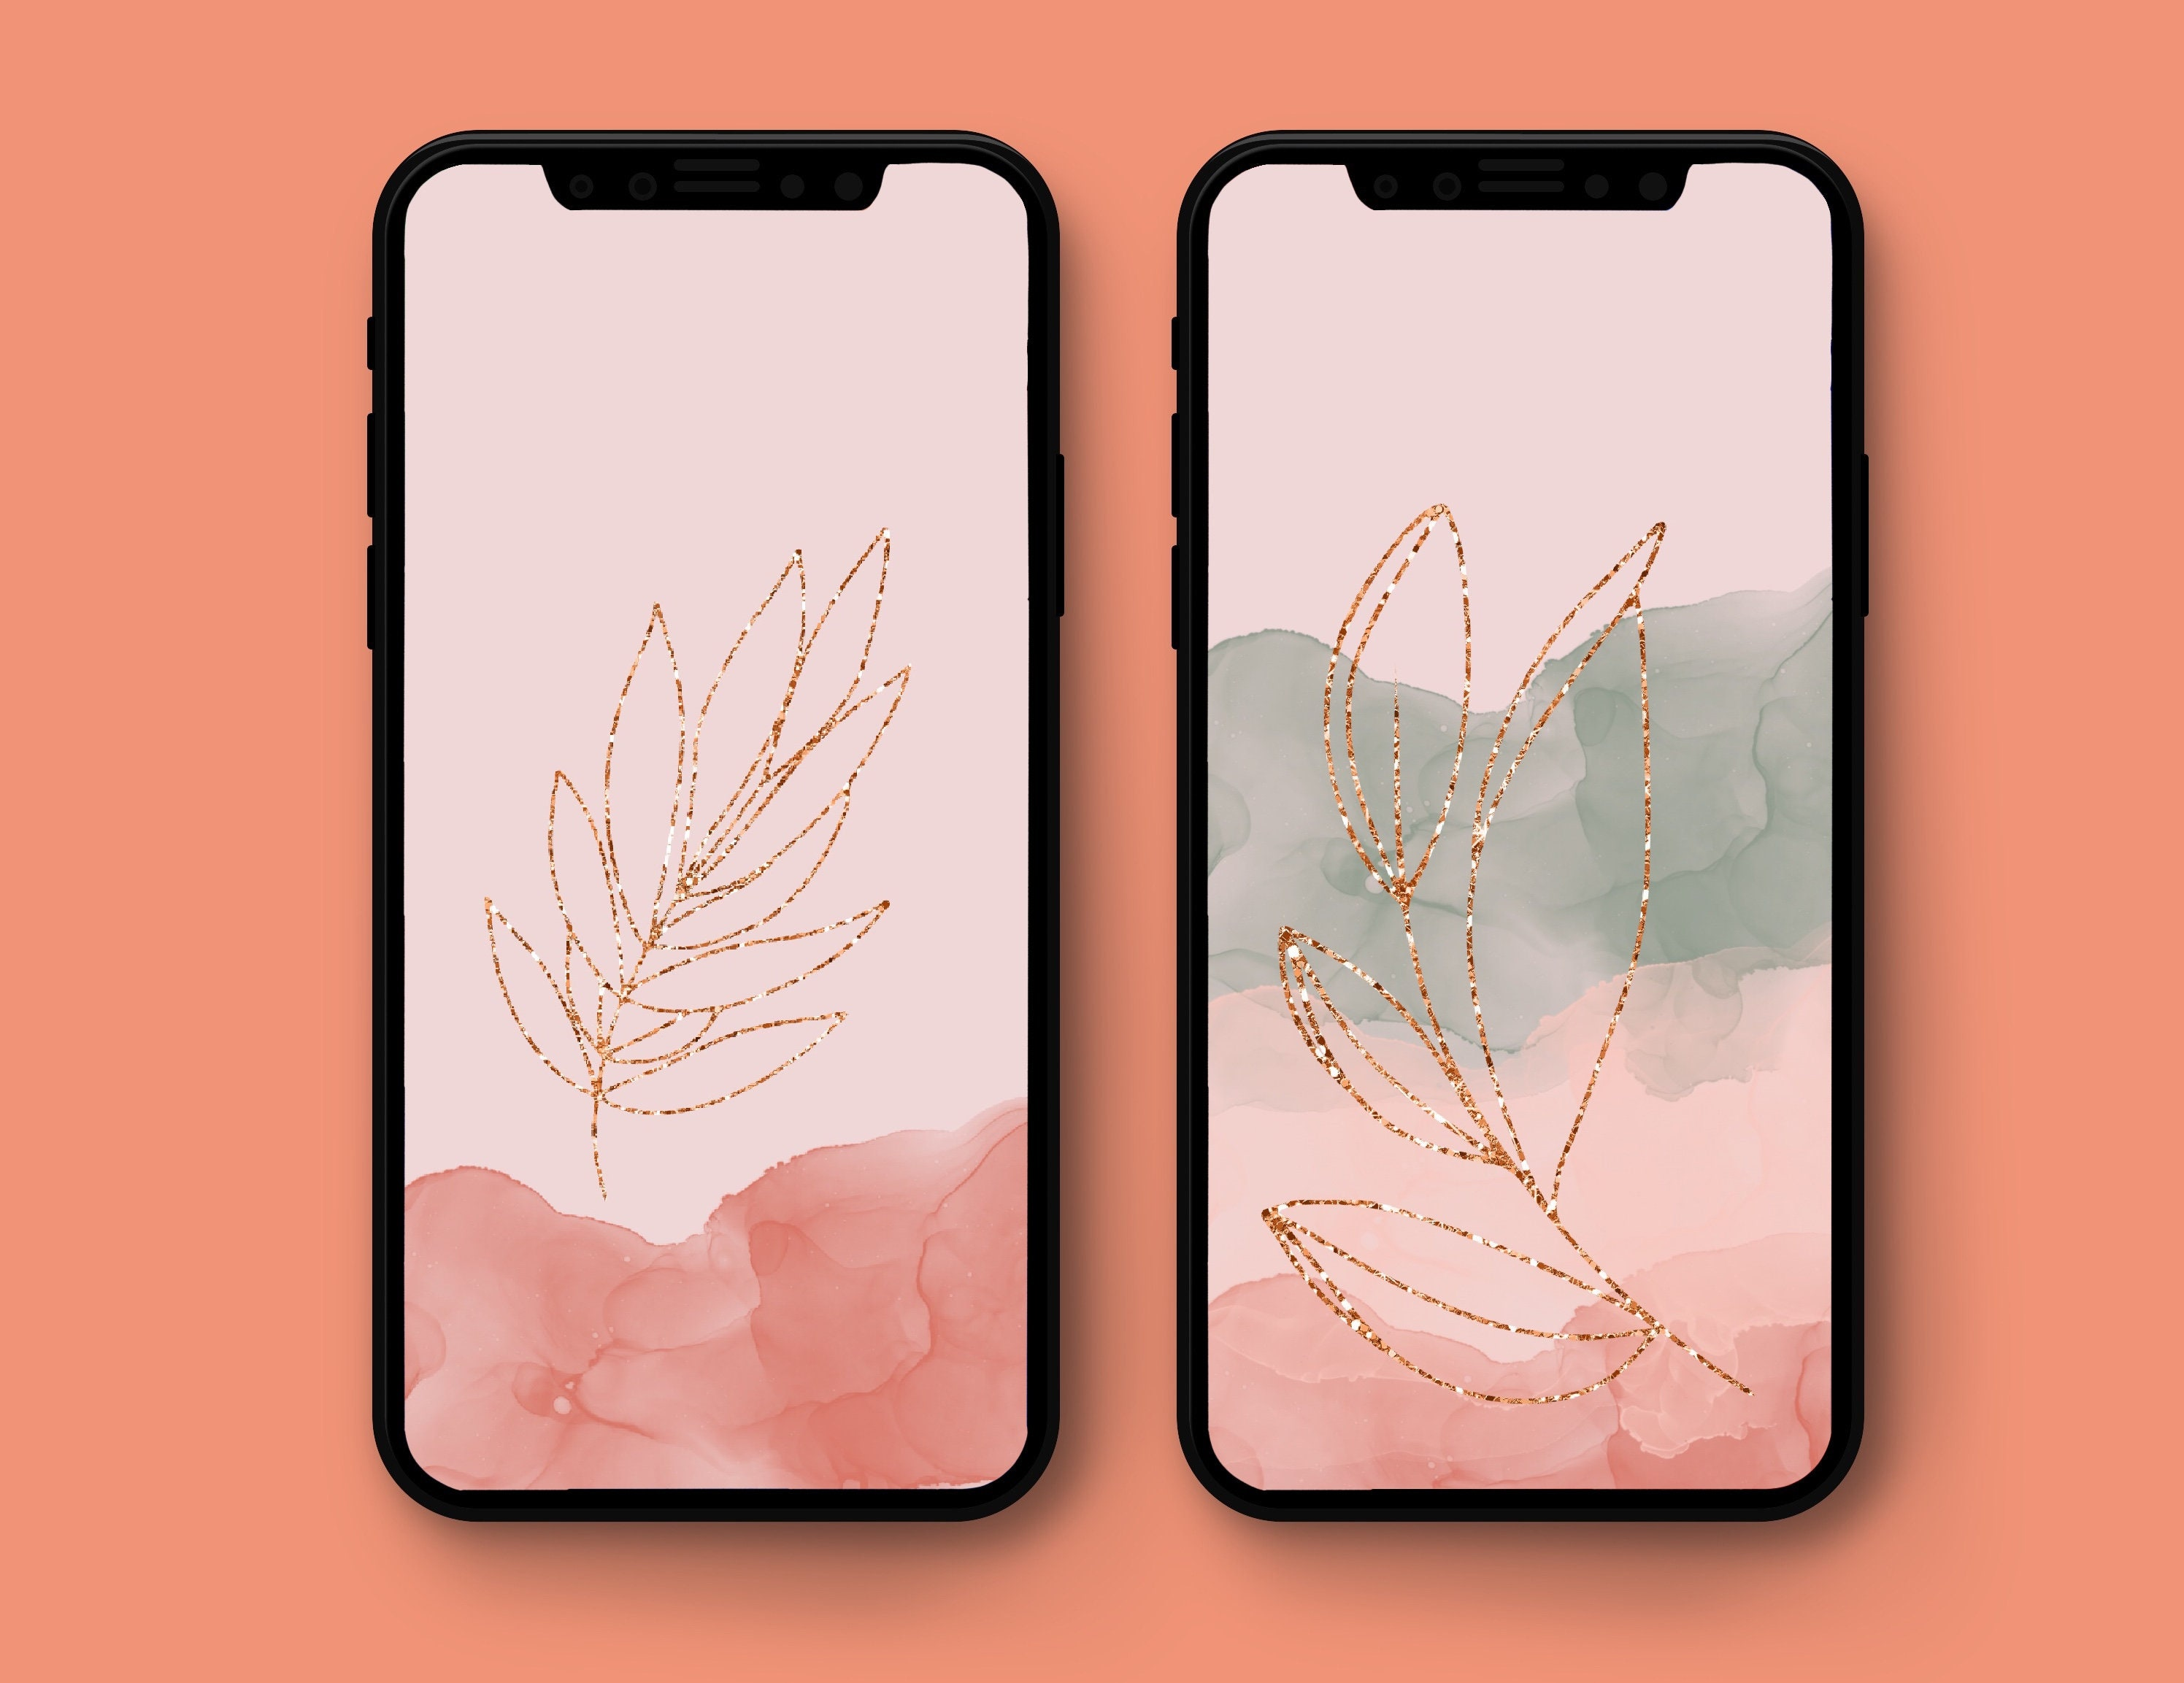 How To Adjust Picture To Fit Iphone Wallpaper